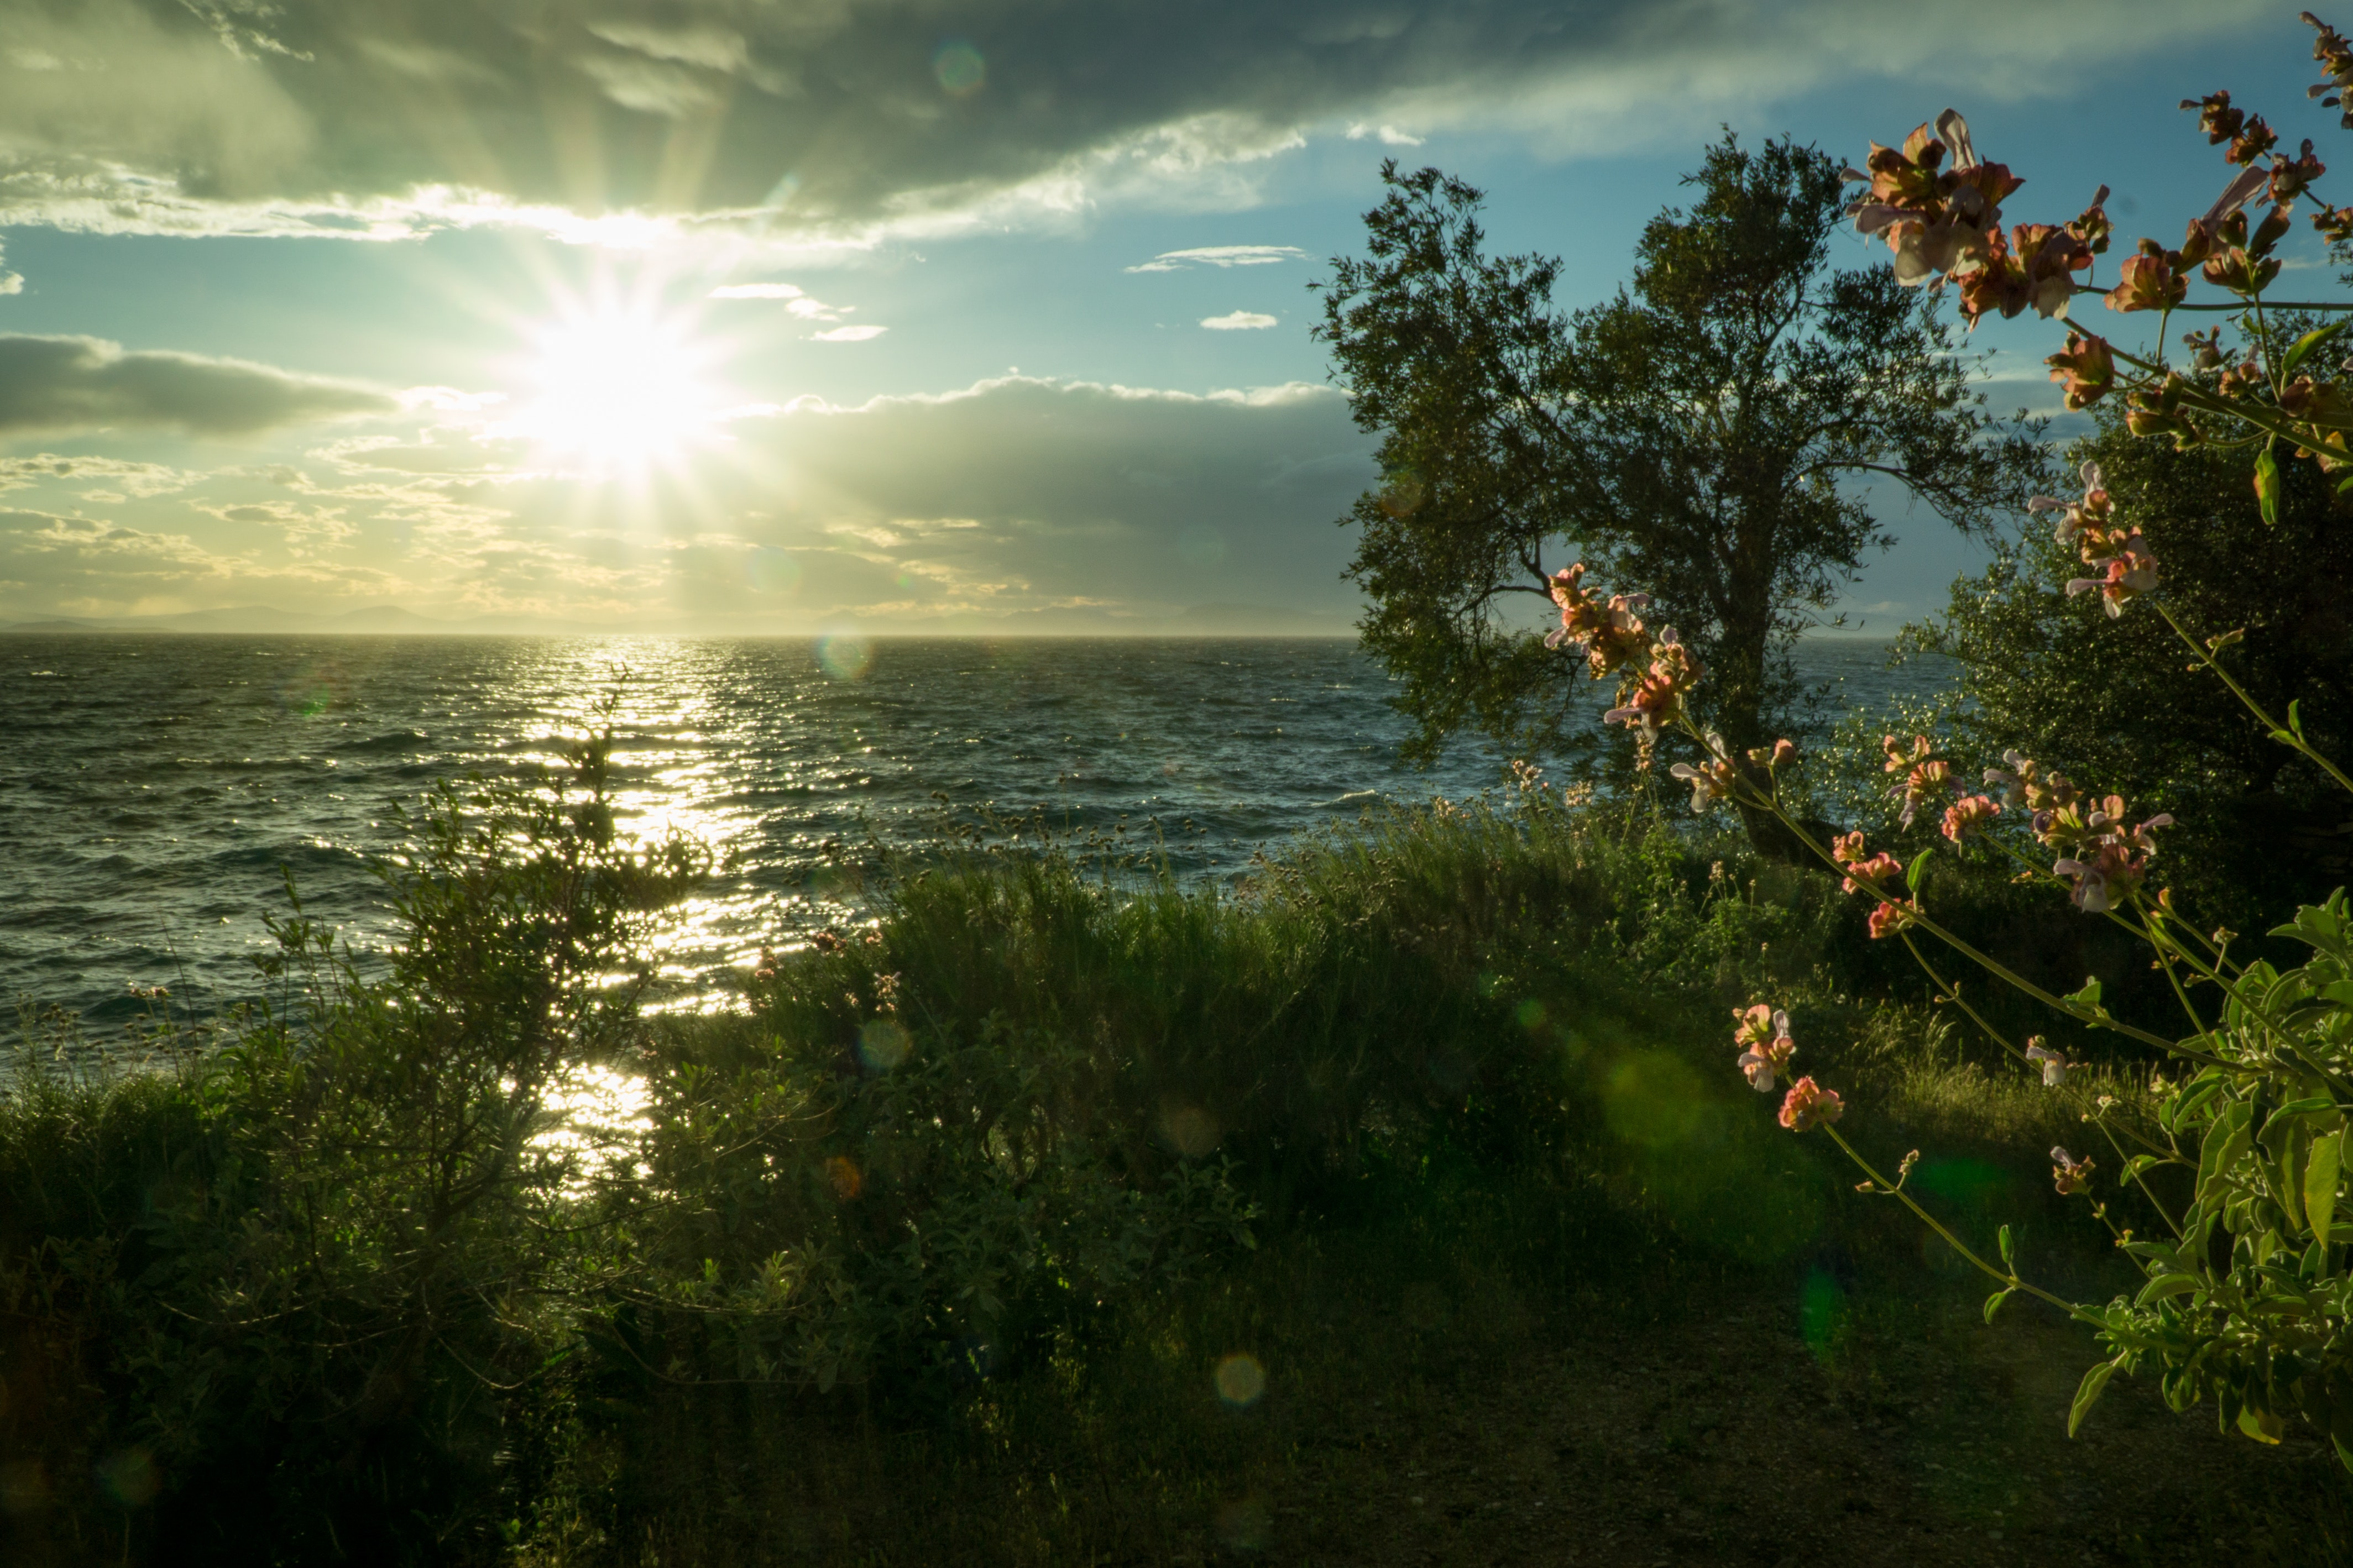 Sun ray hitting body of water green grass trees white clouds during sunrise photo